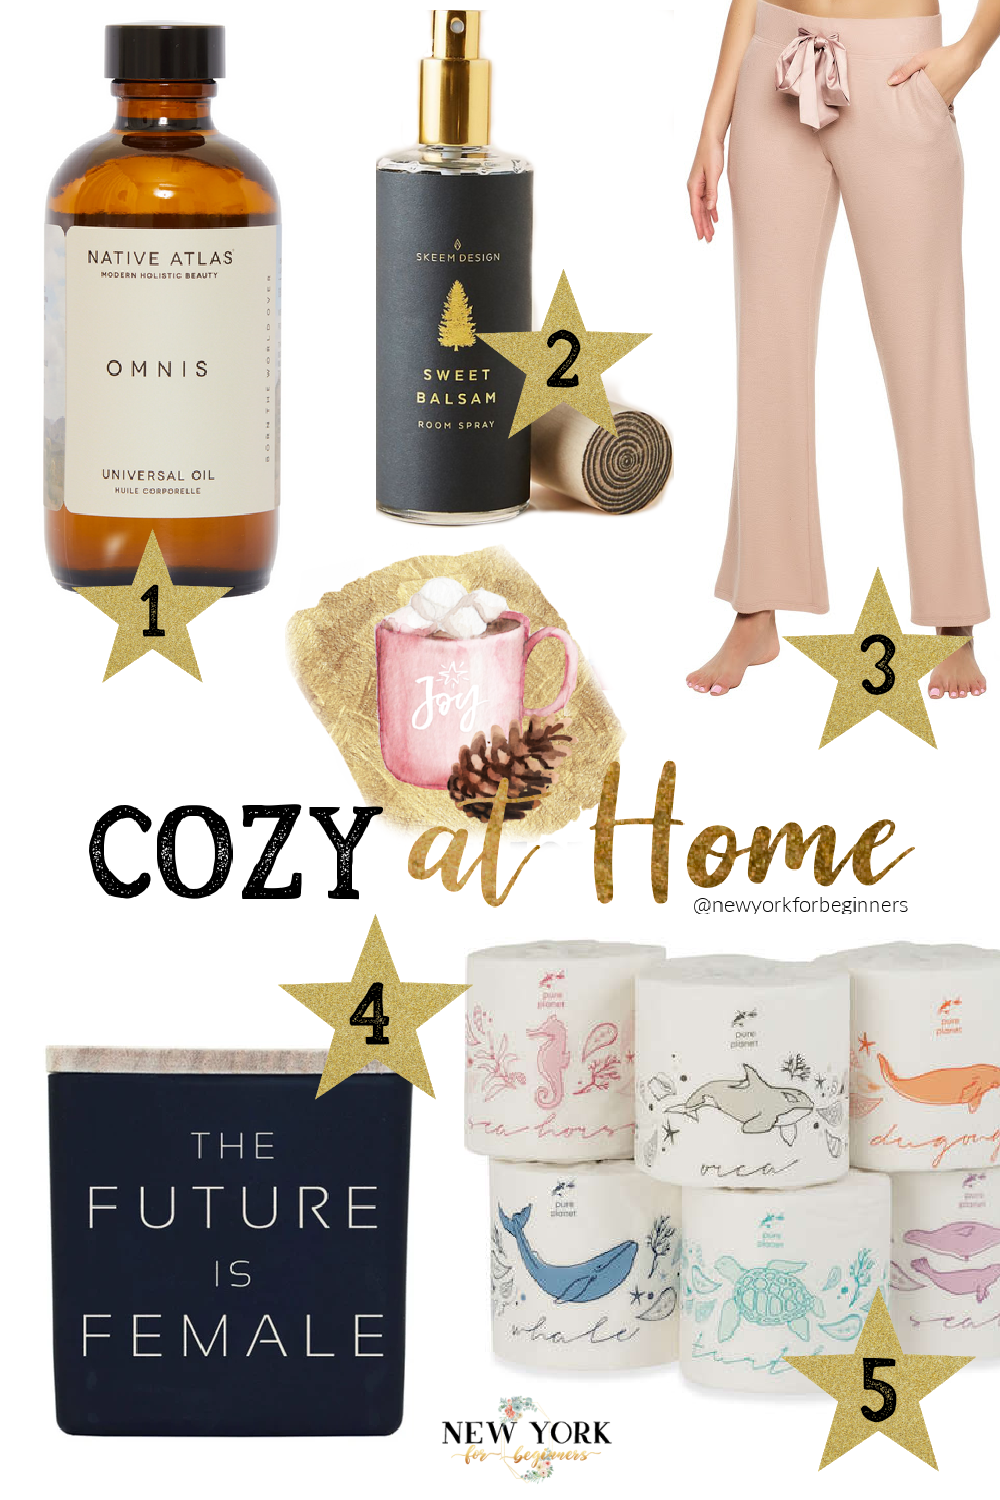 Gifts to be cozy and comfy at home